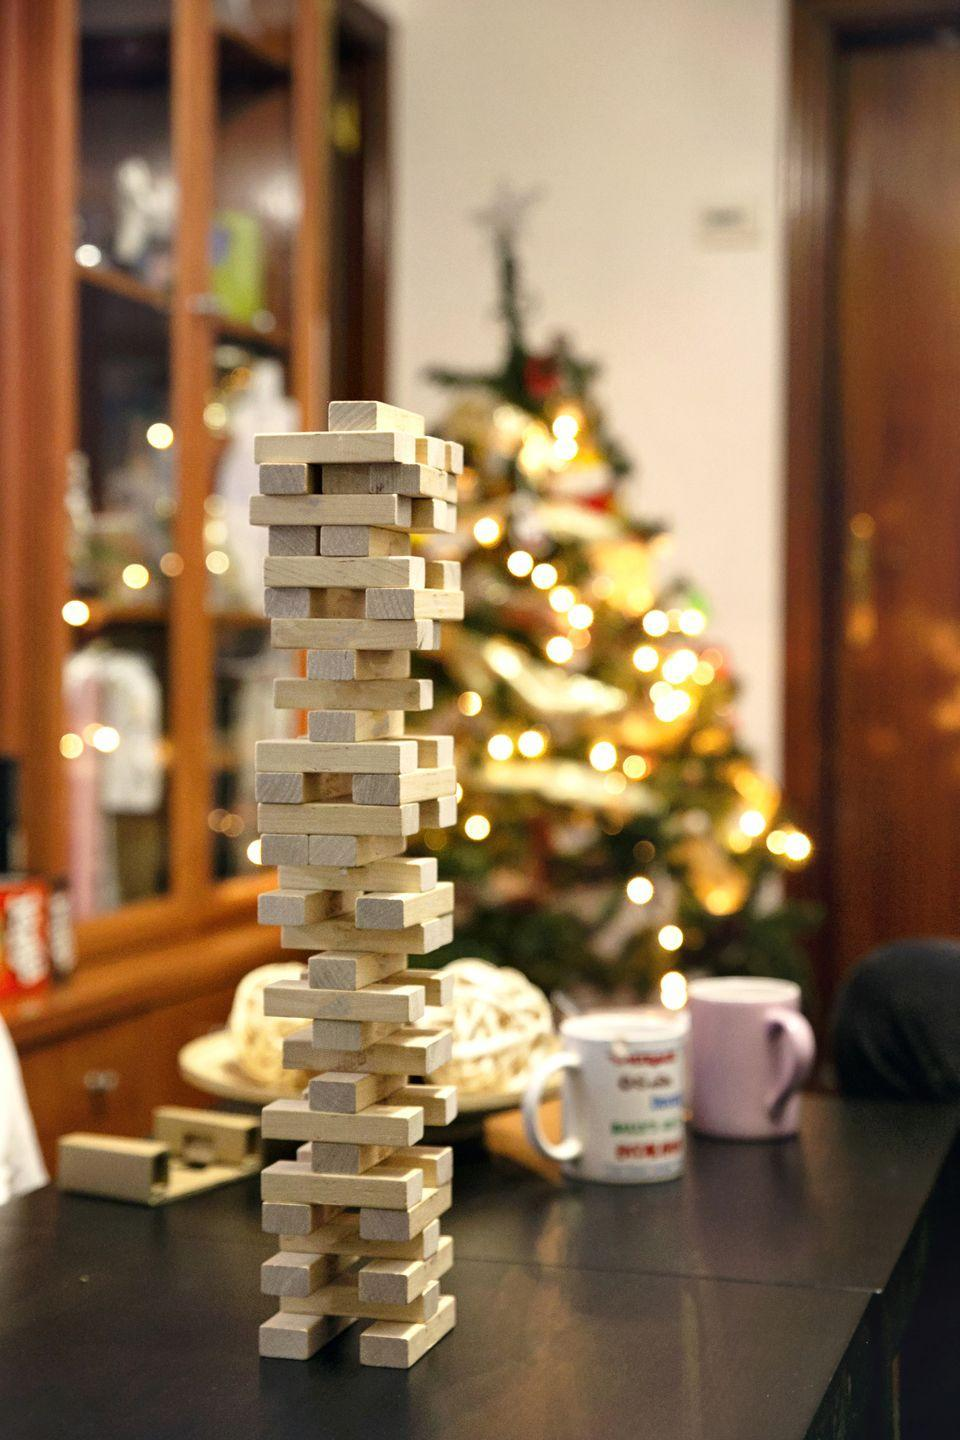 """<p><a href=""""https://www.oprahmag.com/life/g33643974/christmas-party-games/"""" rel=""""nofollow noopener"""" target=""""_blank"""" data-ylk=""""slk:Christmas games"""" class=""""link rapid-noclick-resp"""">Christmas games</a> aren't just for kids—and dedicating your evening to playing a few is an easy way to infuse a regular old Friday night with some holiday merriment. Think: Christmas movie trivia, holiday charades, a kid-friendly <a href=""""https://go.redirectingat.com?id=74968X1596630&url=https%3A%2F%2Fwww.etsy.com%2Flisting%2F736206761%2Fchristmas-scavenger-hunt-printable%3Fsource%3Daw%26awc%3D6220_1603727963_dbb5630be3071a90a6995945bf653635&sref=https%3A%2F%2Fwww.oprahmag.com%2Flife%2Fg34454588%2Fchristmas-activities%2F"""" rel=""""nofollow noopener"""" target=""""_blank"""" data-ylk=""""slk:scavenger hunt"""" class=""""link rapid-noclick-resp"""">scavenger hunt</a>, festive <a href=""""https://www.amazon.com/dp/0515157090?linkCode=ogi&tag=syn-yahoo-20&ascsubtag=%5Bartid%7C10072.g.34454588%5Bsrc%7Cyahoo-us"""" rel=""""nofollow noopener"""" target=""""_blank"""" data-ylk=""""slk:Mad Libs"""" class=""""link rapid-noclick-resp"""">Mad Libs</a>, or a good old fashioned<a href=""""https://www.oprahmag.com/life/g28436280/games-to-play-with-friends/"""" rel=""""nofollow noopener"""" target=""""_blank"""" data-ylk=""""slk:board game"""" class=""""link rapid-noclick-resp""""> board game</a>.</p>"""